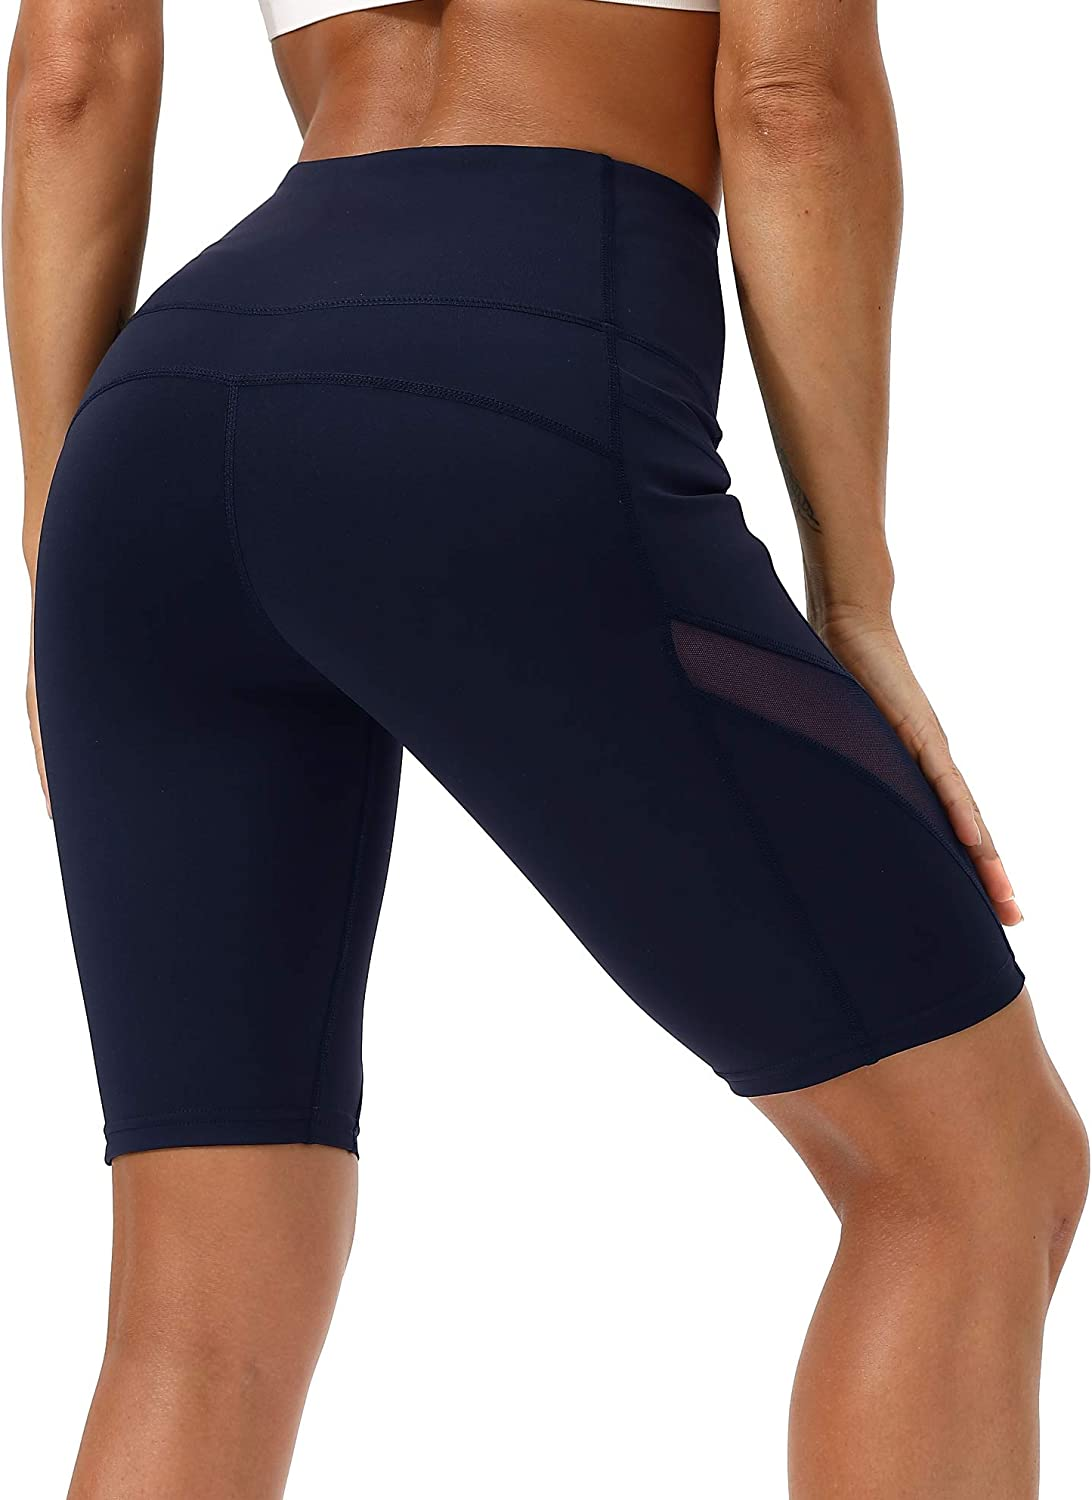 DILANNI Womens Bike Shorts High Waisted Non See-Through Workout Yoga Shorts with Pockets